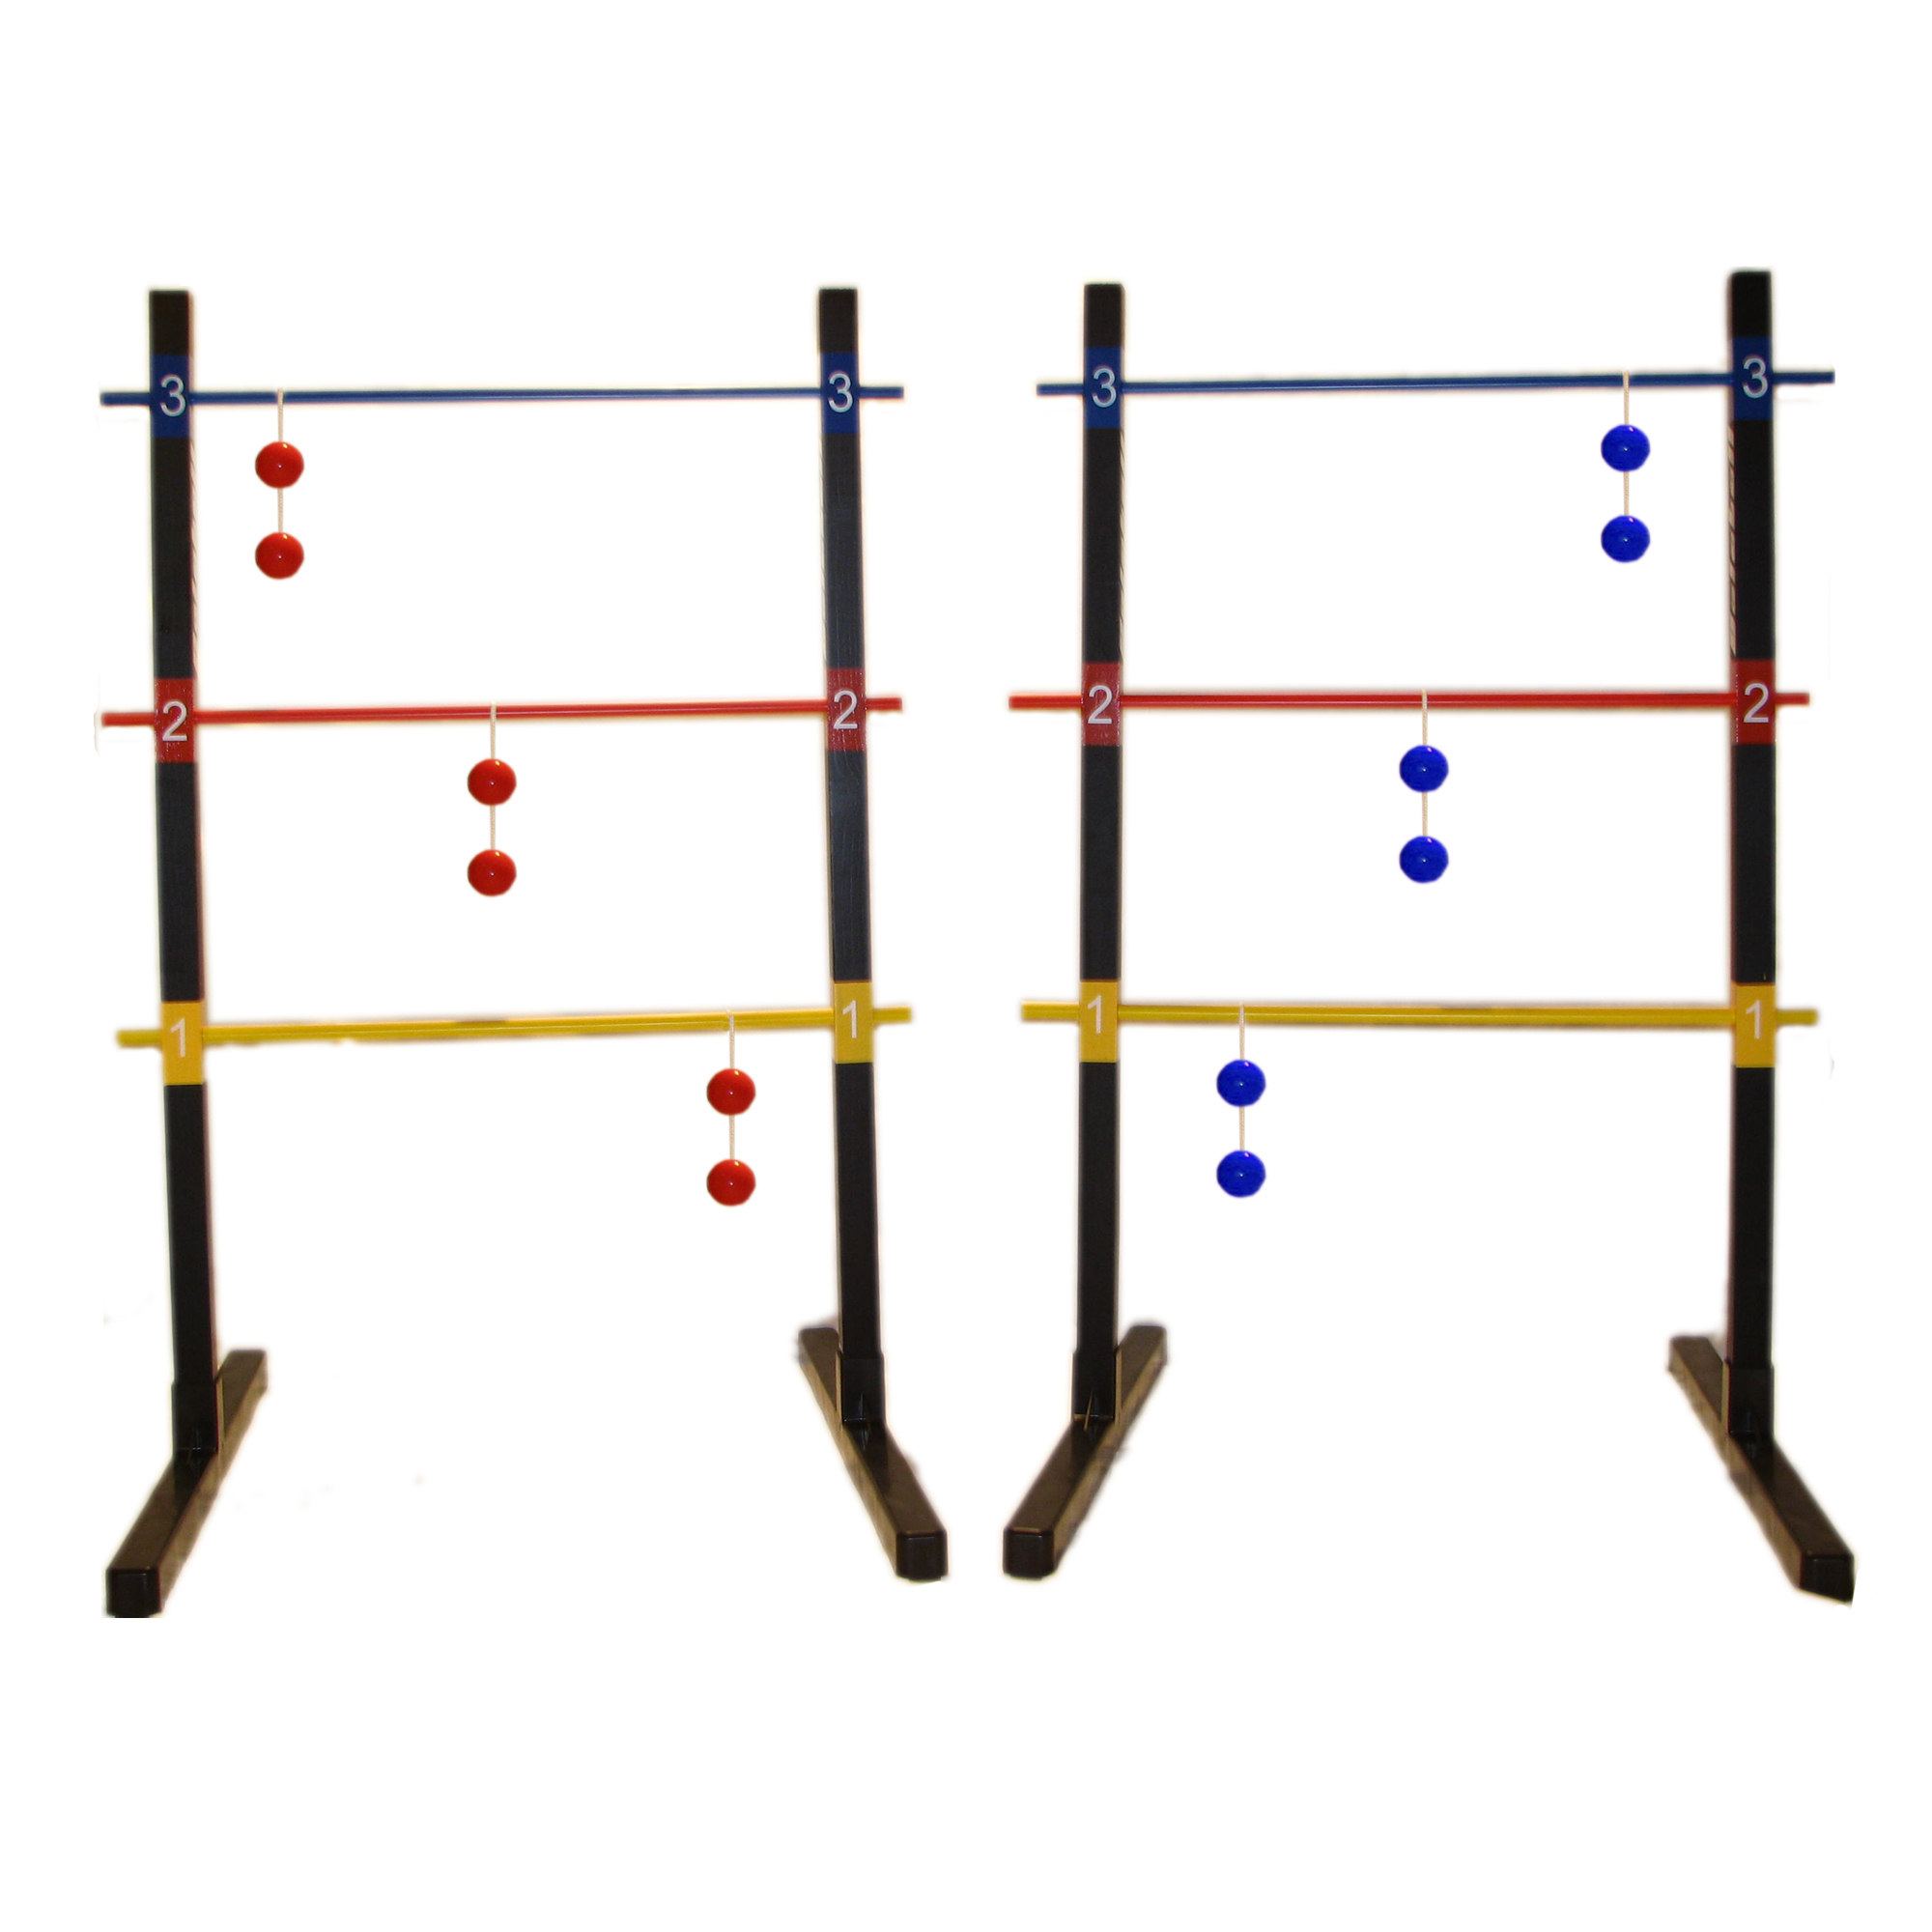 BolaBall Wooden Ladder Golf Game Set Ladderball, Indoor or Outdoor with 6 Bolaball sets, Heavy Duty Carrying Case with Shoulder Strap, T-Base